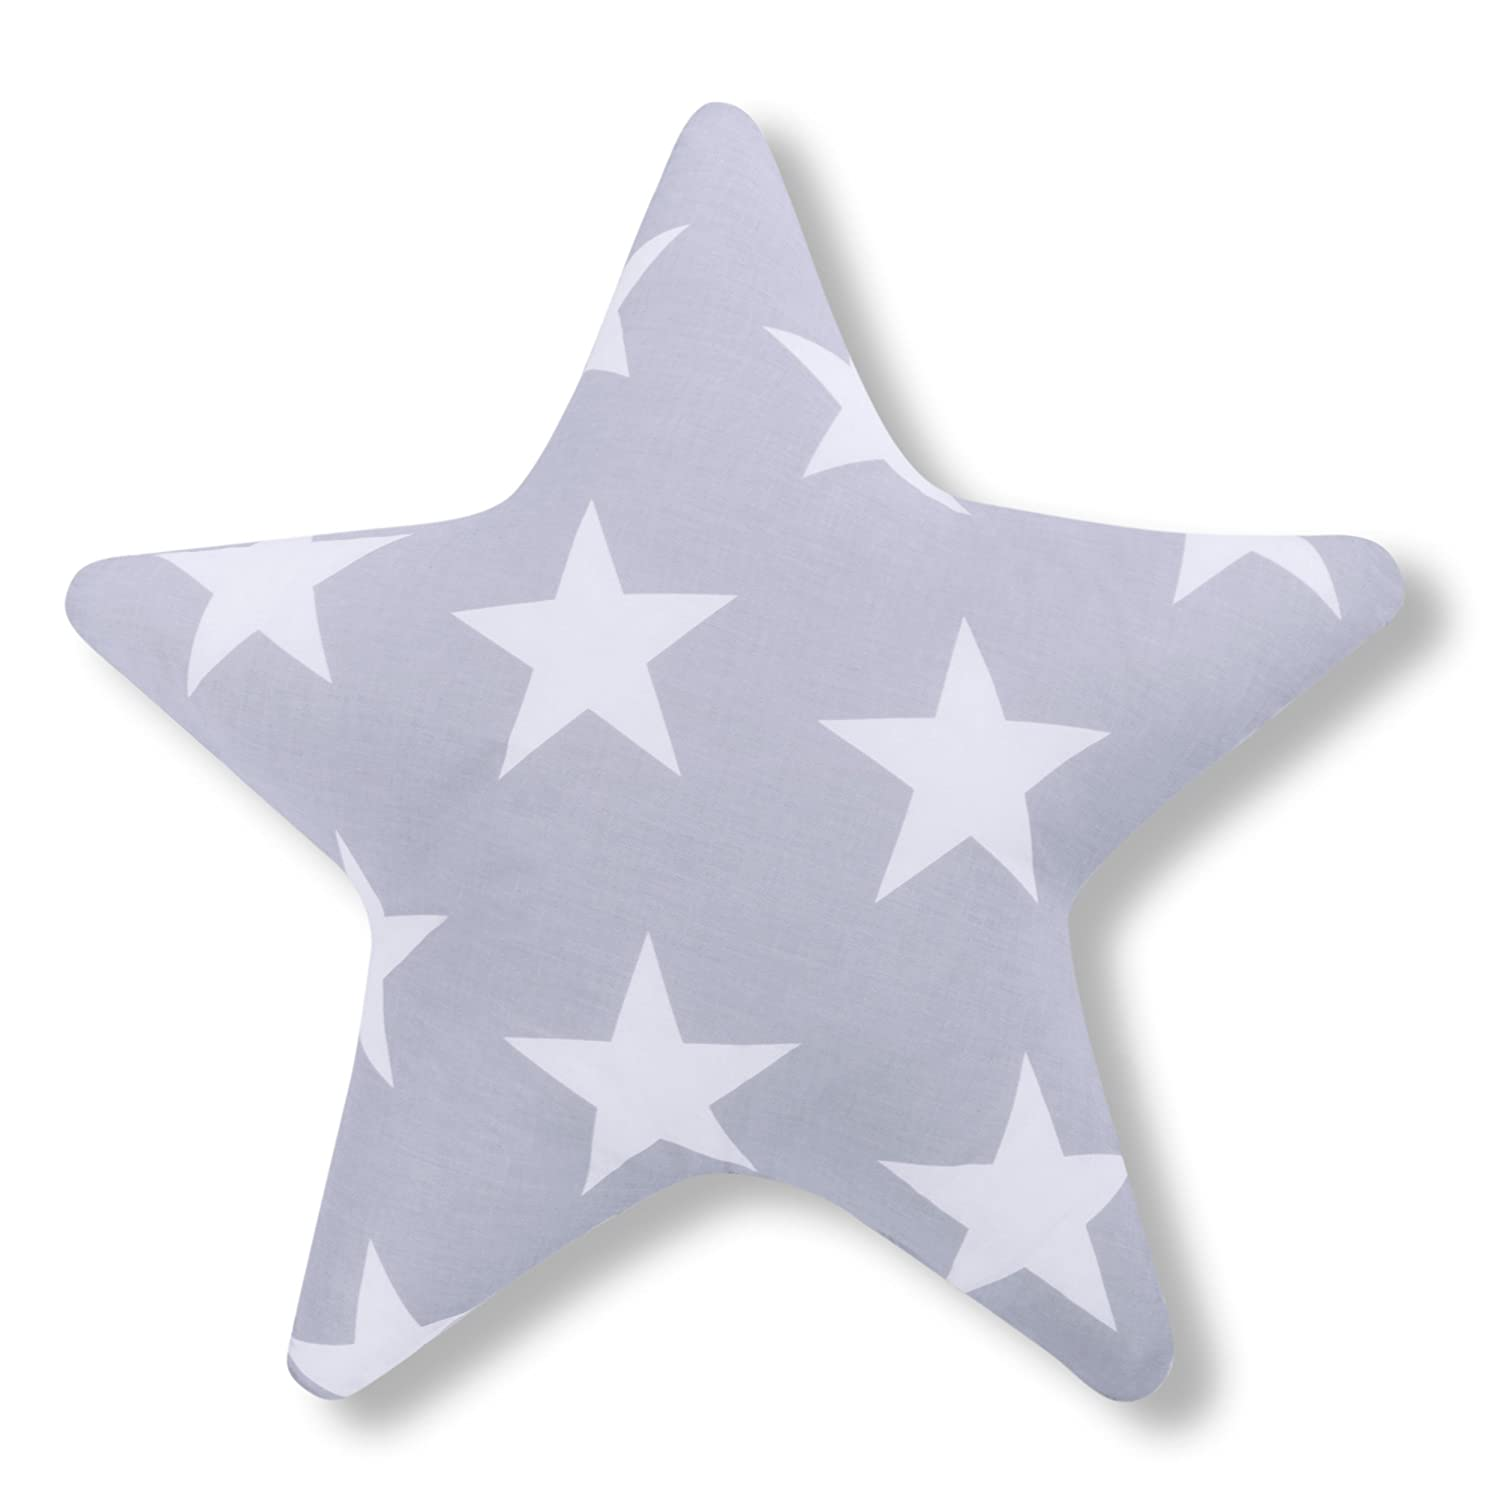 Amilian® Star Shaped Pillow Cushion Two Sided Fleece/100% Cotton Cosy Fluffy, Star Print Grey Approx 60 cm